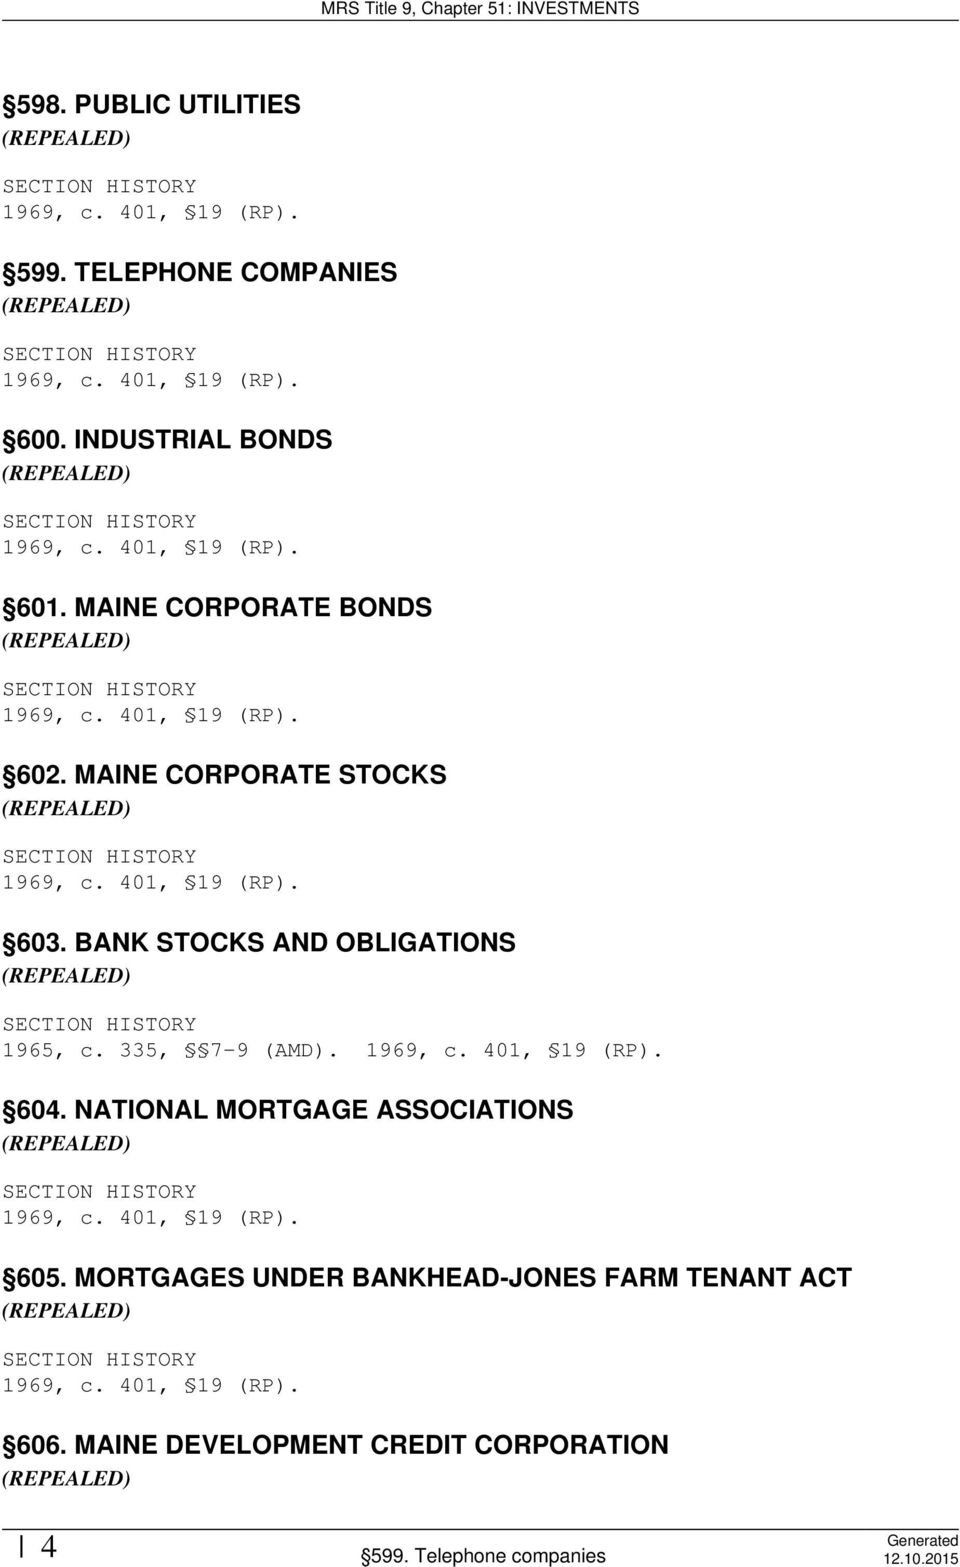 BANK STOCKS AND OBLIGATIONS 1965, c. 335, 7-9 (AMD). 604.